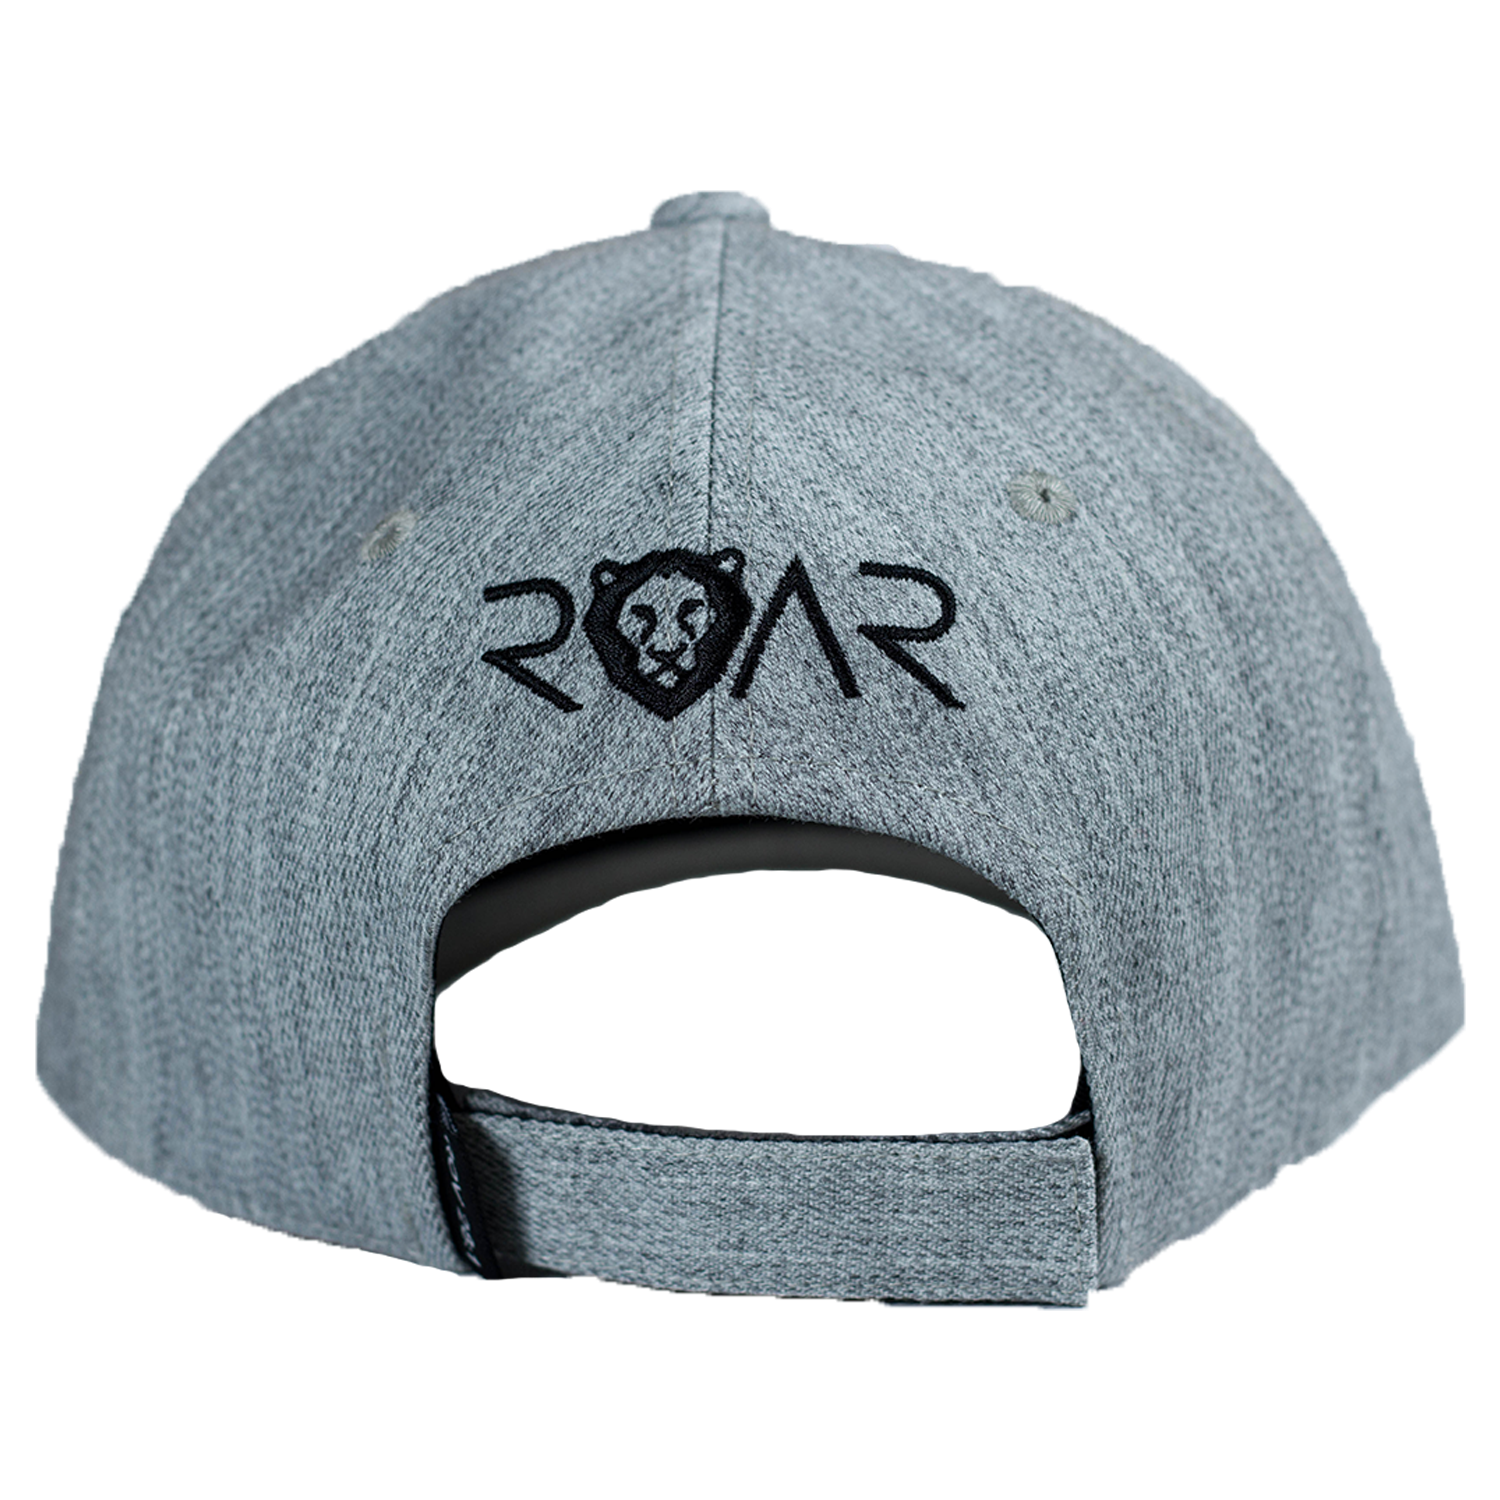 ROAR GOLF HAT - GRAY/BLACK